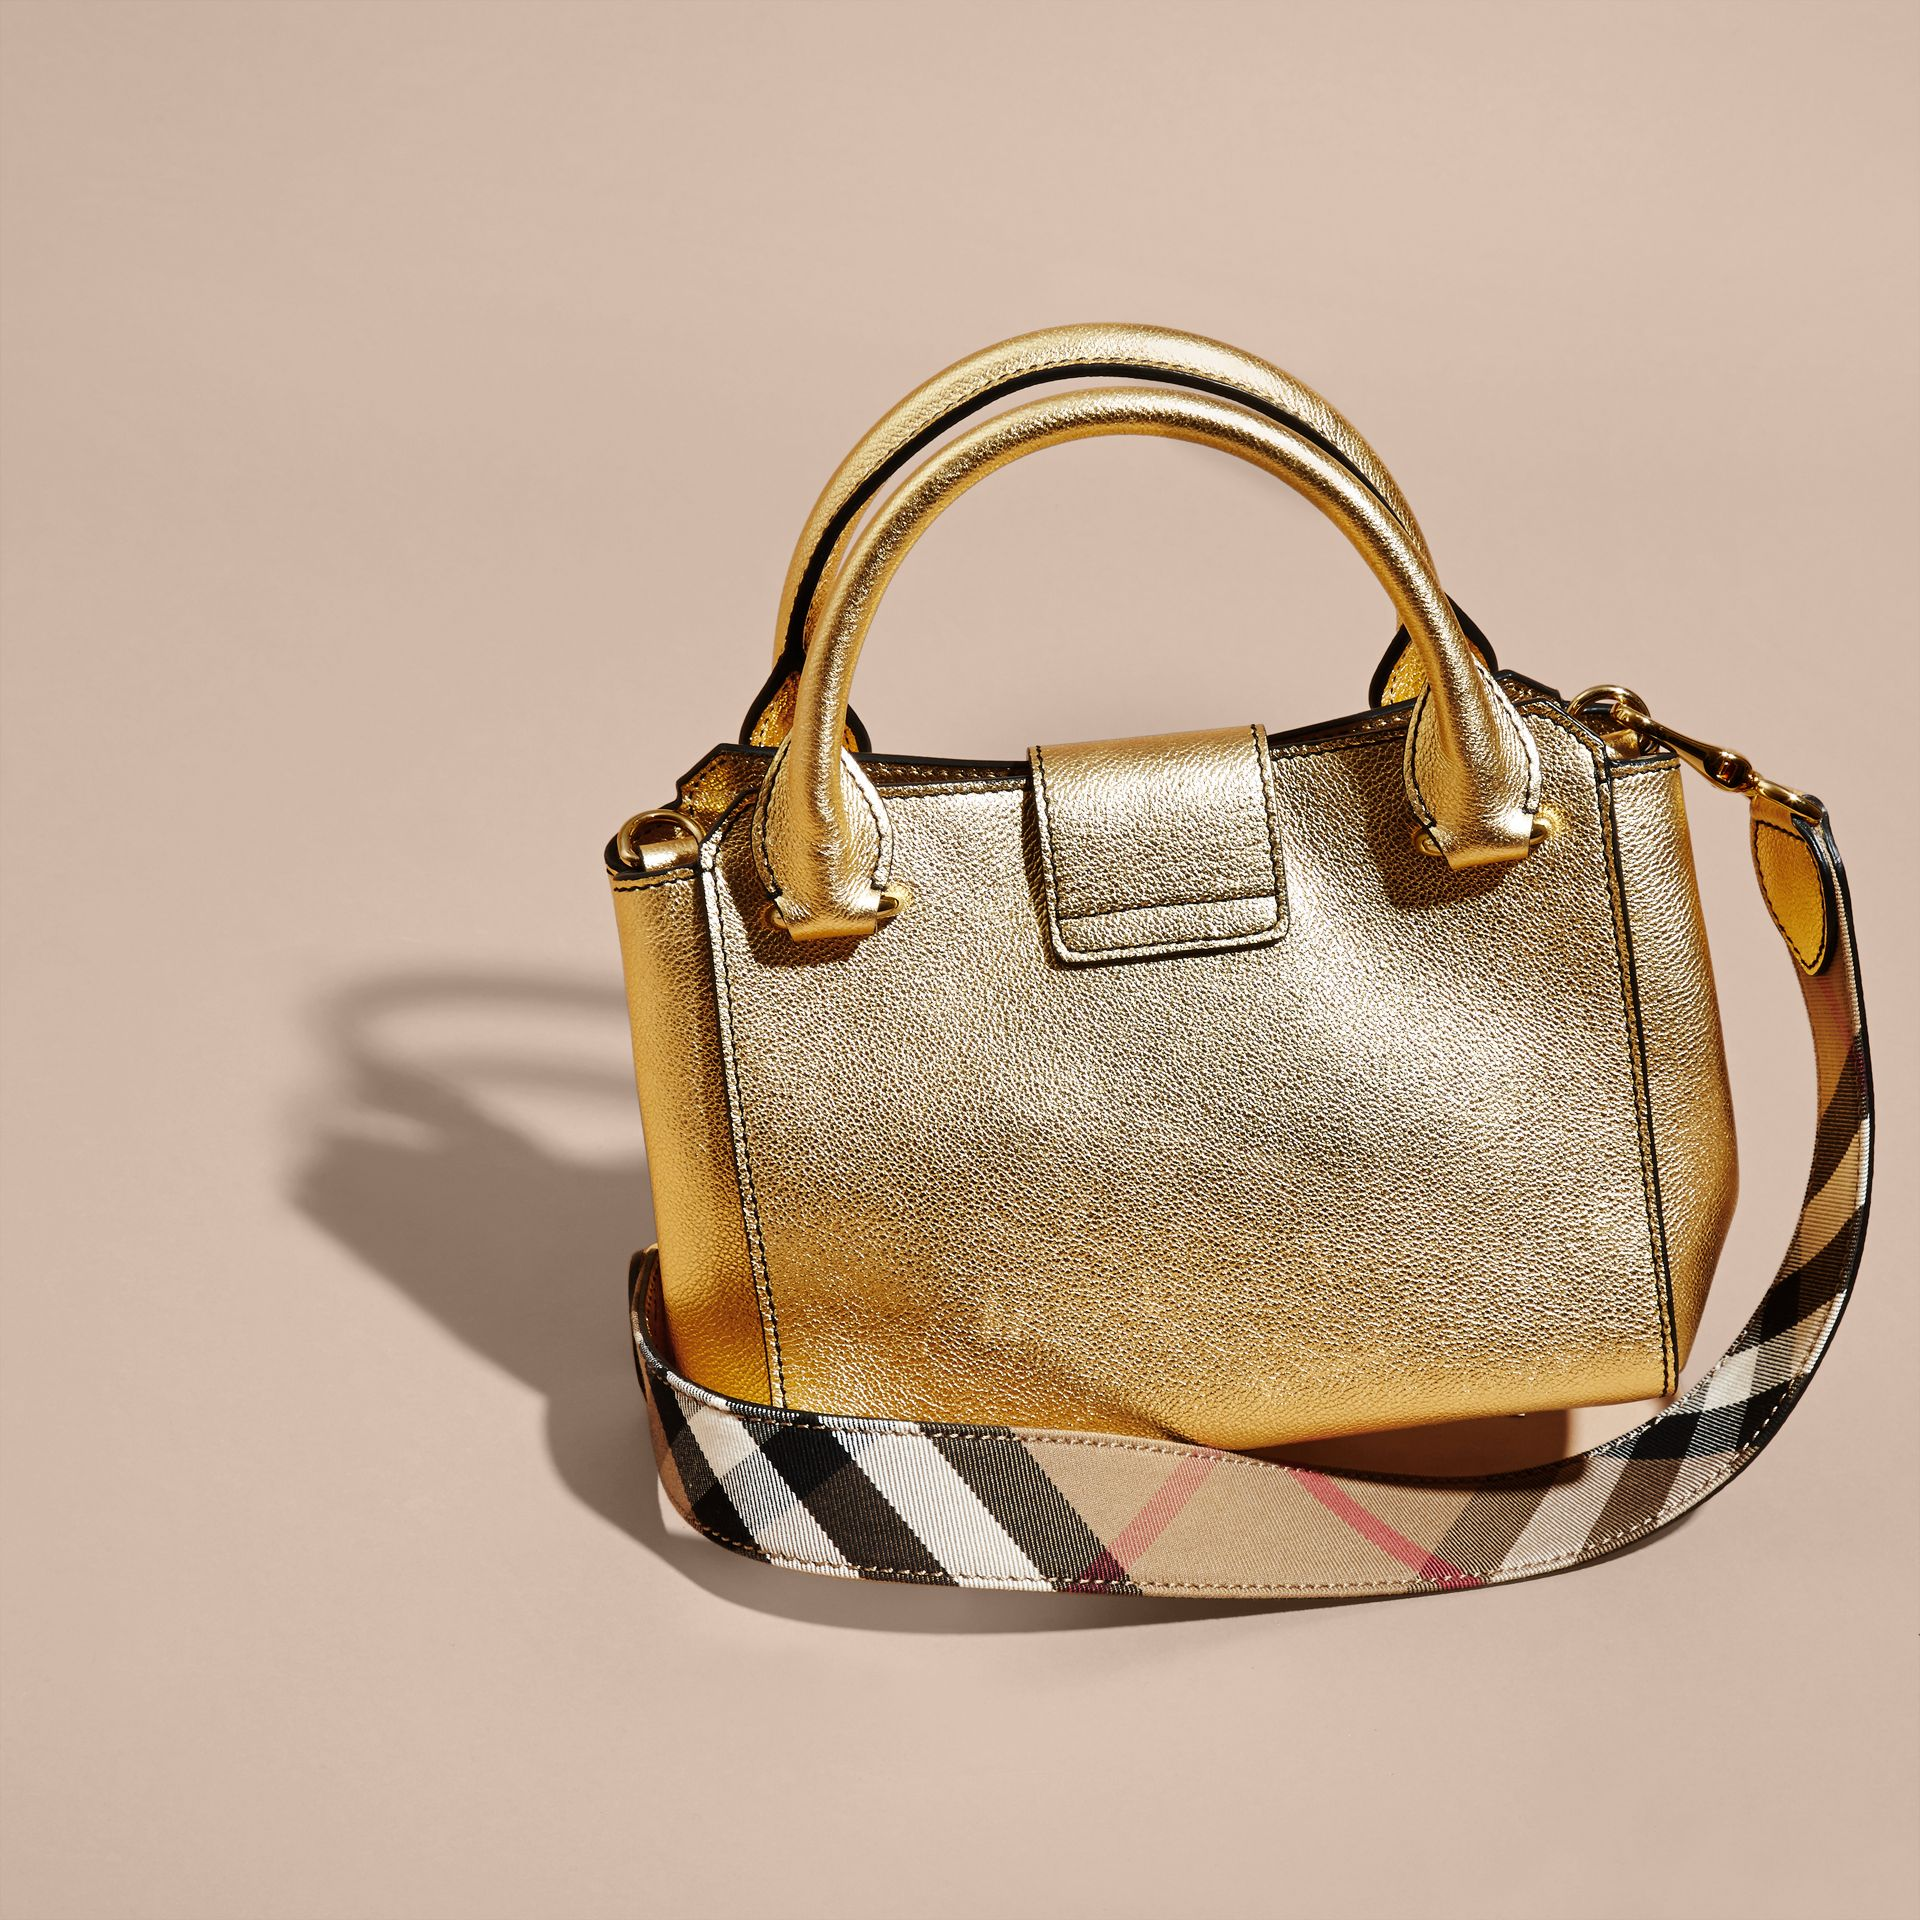 Gold The Small Buckle Tote in Metallic Leather Gold - gallery image 5